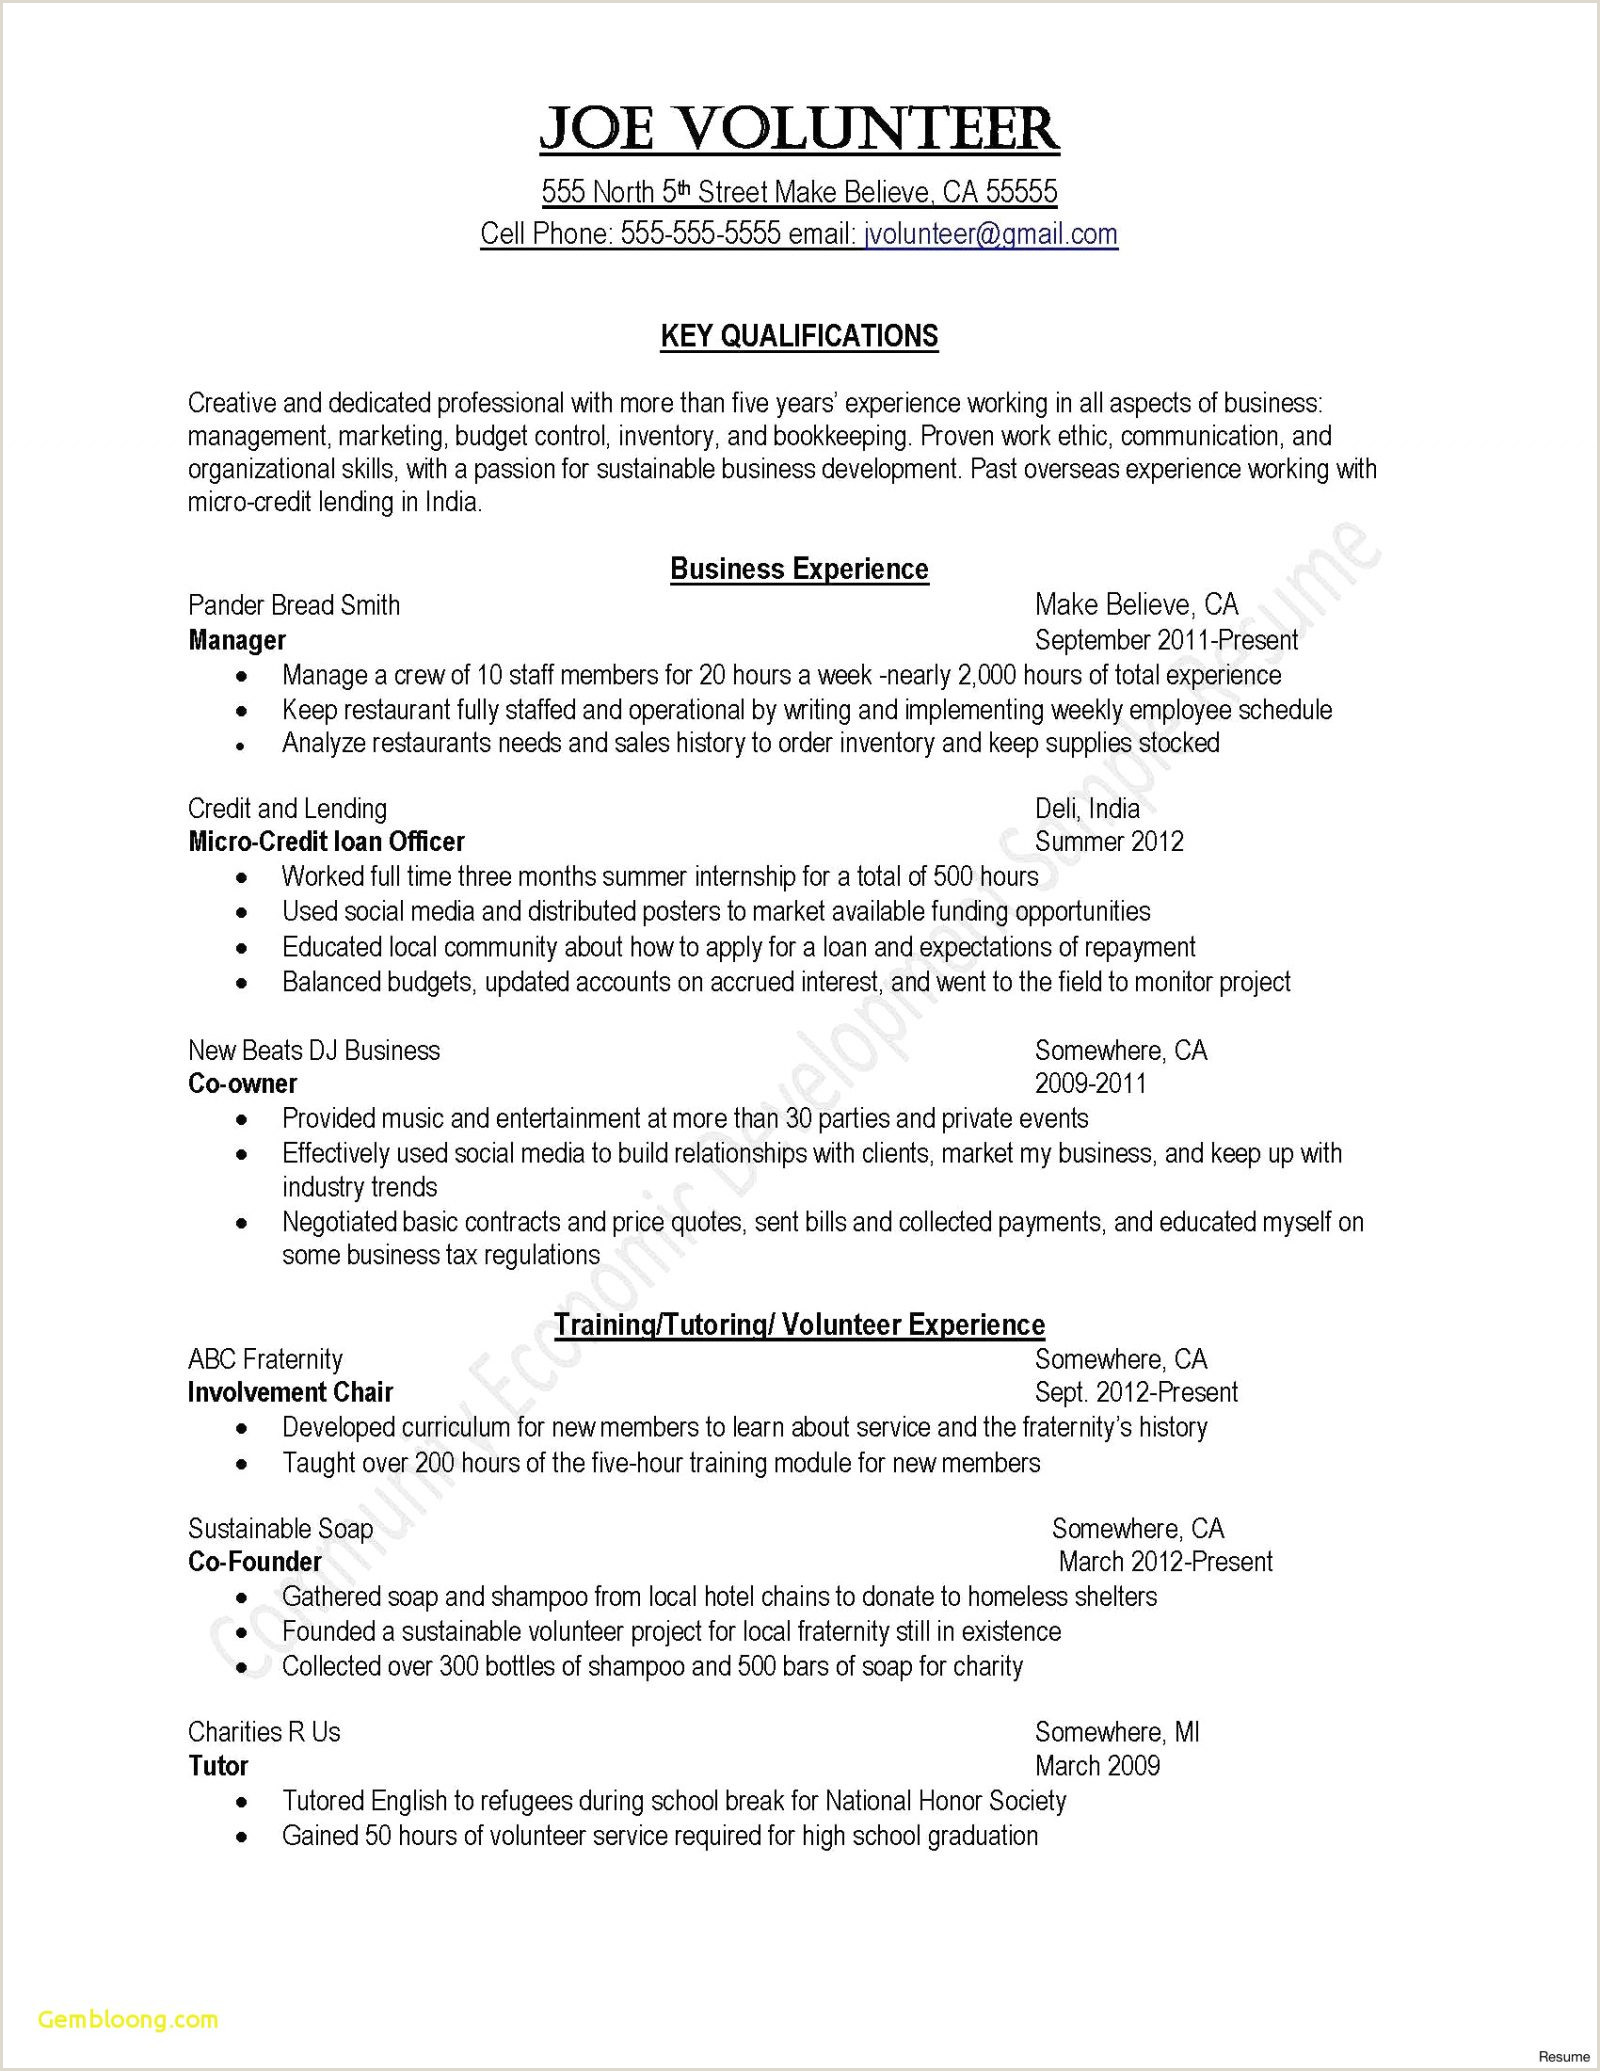 Standard Cv Format Pdf Indian Style English Cv Model Pdf Curriculum Vitae Models Elegant Pr